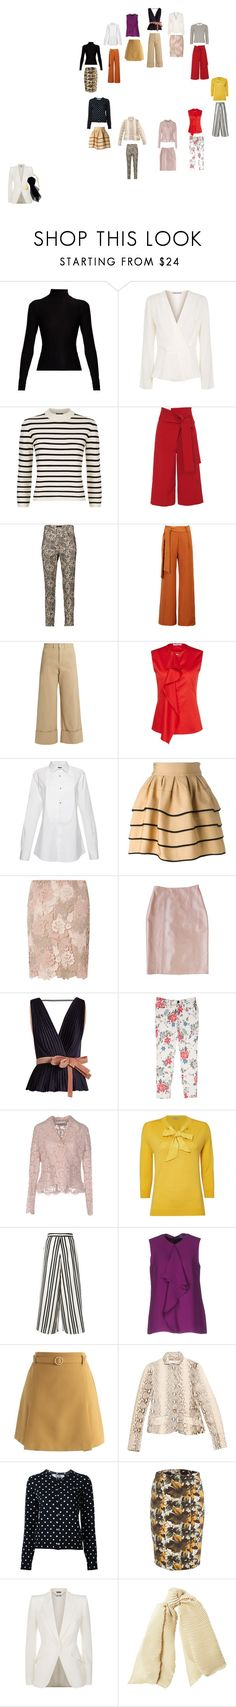 """20 piece 2"" by marchied on Polyvore featuring Acne Studios, Elizabeth and James, Theory, TIBI, Isabel Marant, WithChic, Sea, New York, ATM by Anthony Thomas Melillo, FAUSTO PUGLISI and Dorothy Perkins"